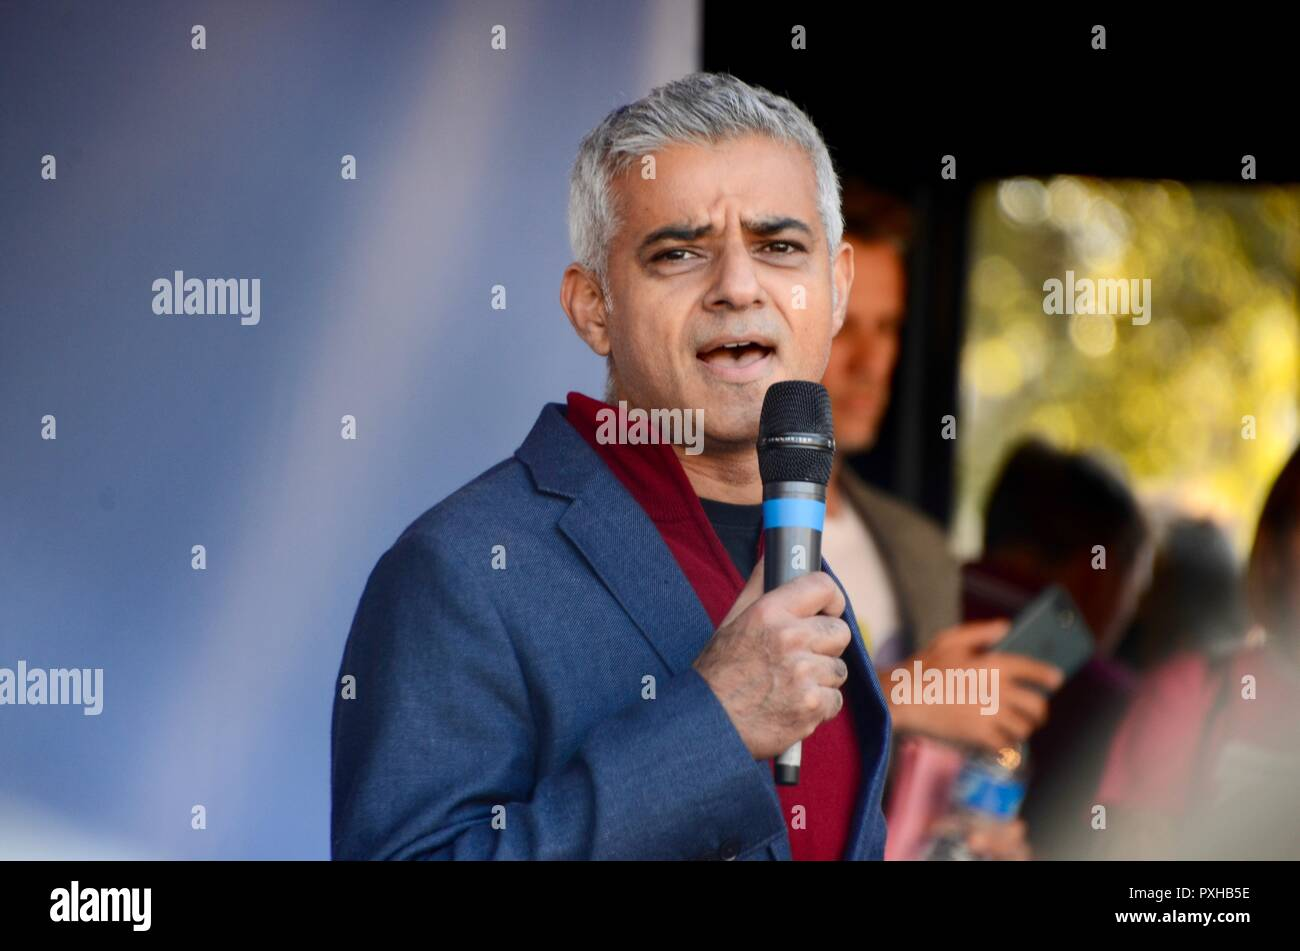 londons mayor sadiq khan addressing the crowd at the peoples vote march in london october 20th 2018 - Stock Image